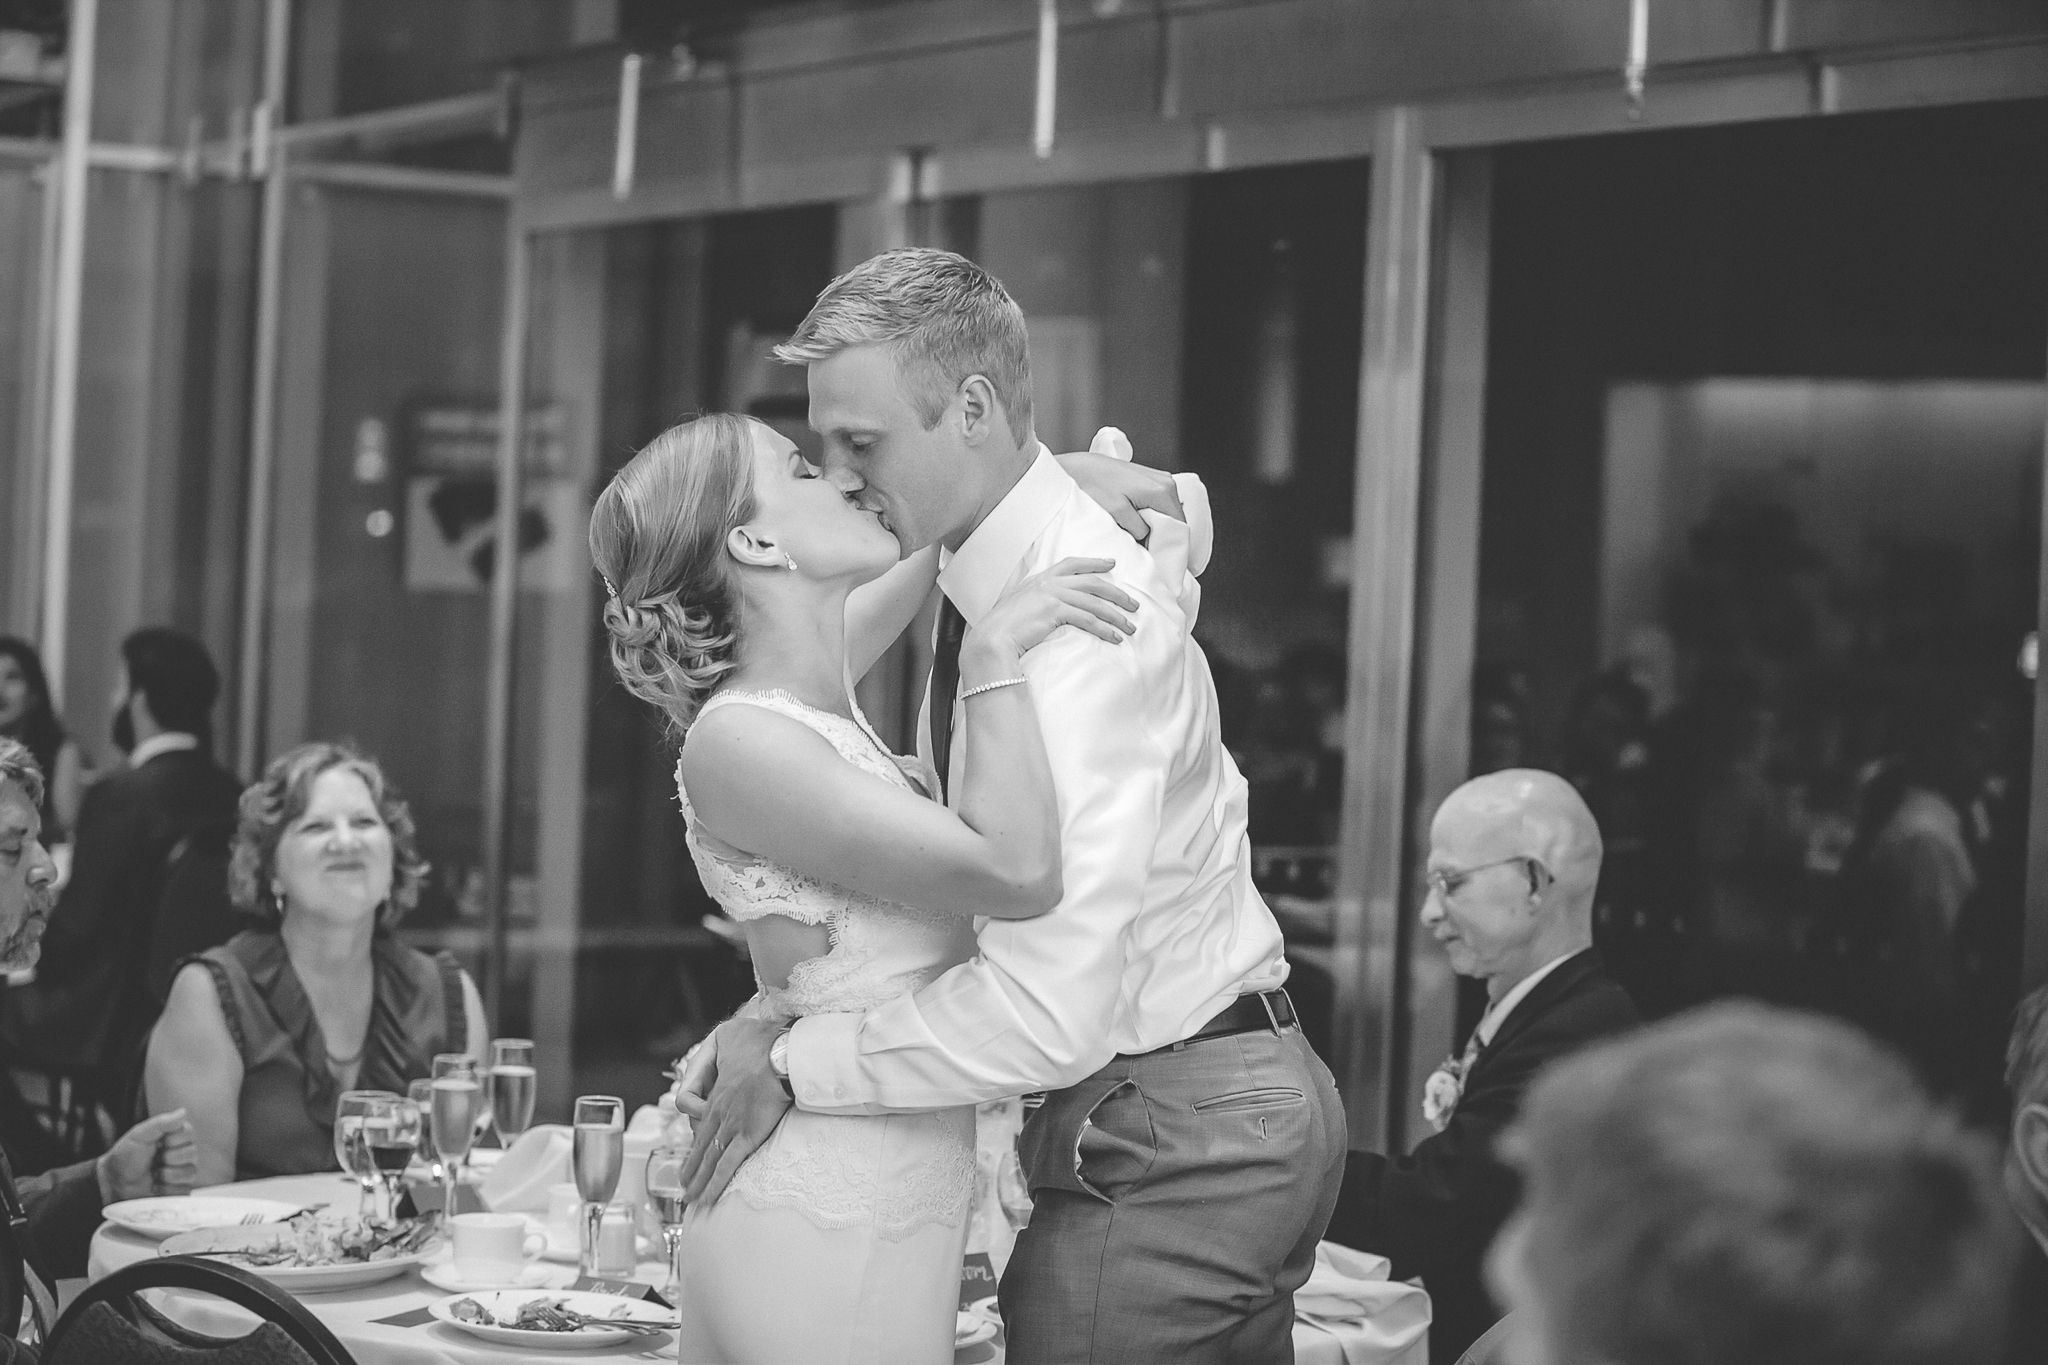 minneapolis central library mintahoe wedding photography-61.jpg